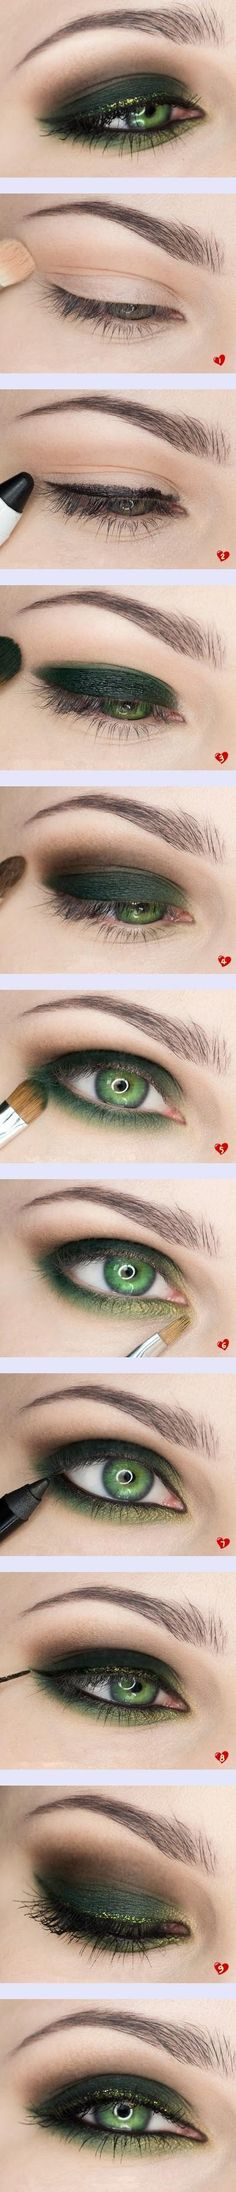 Emerald Green make up step by step